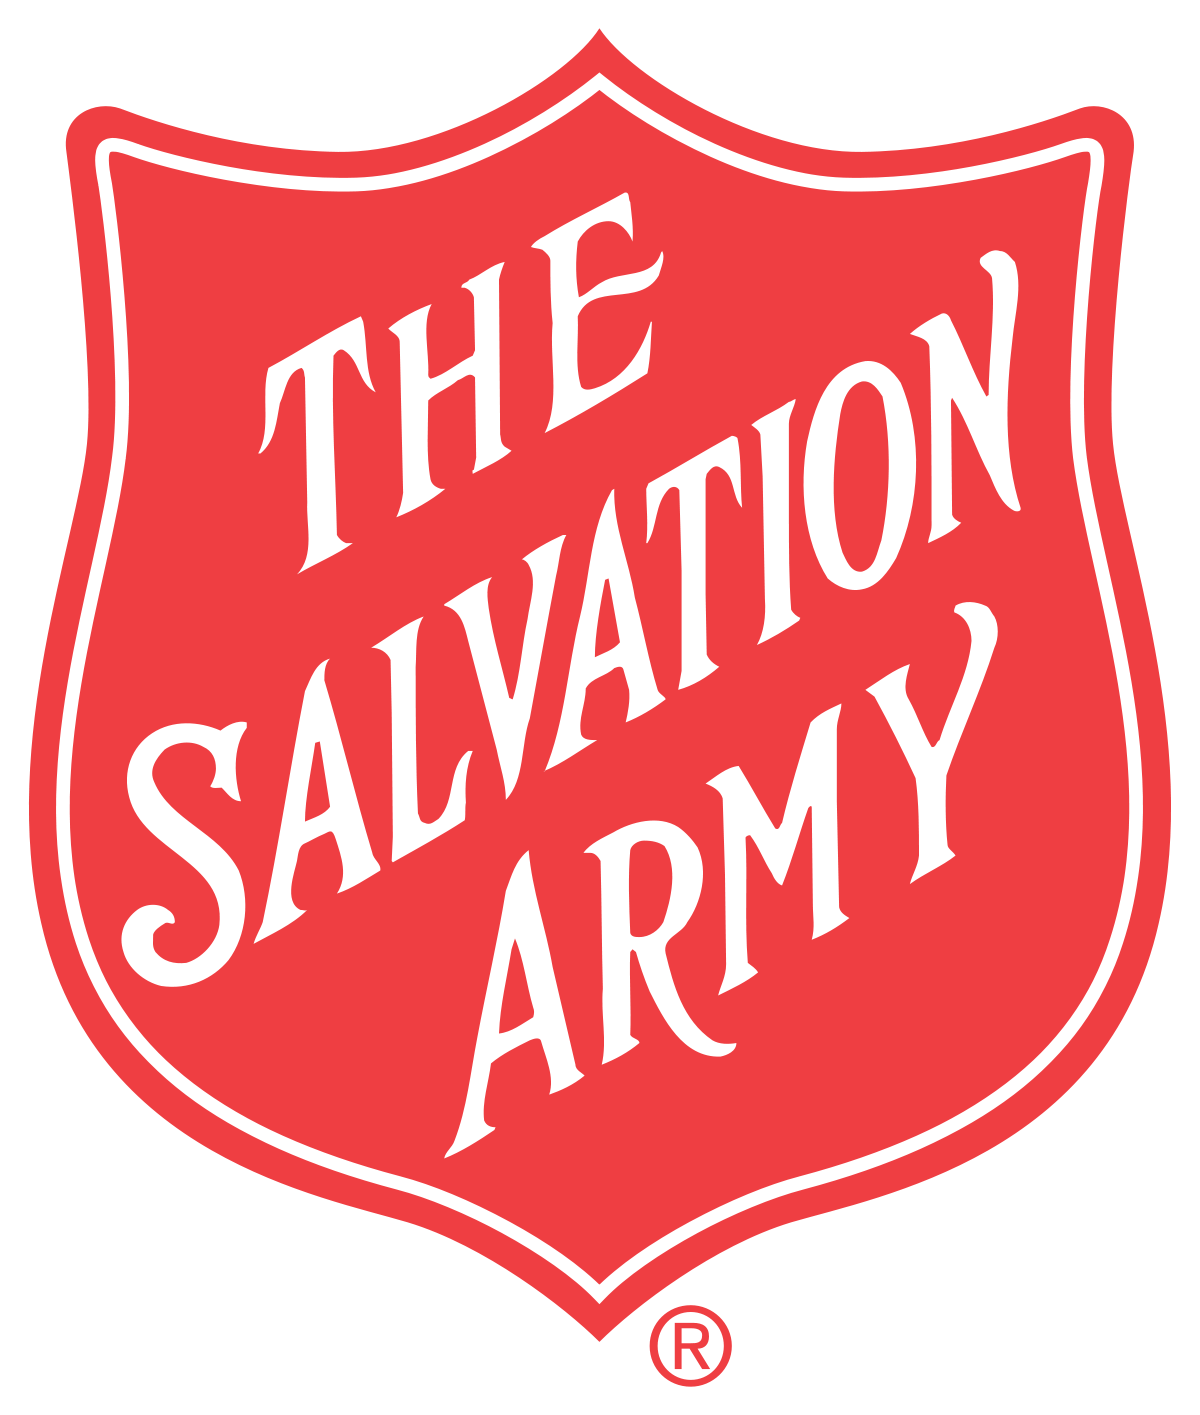 Missions clipart church officer. The salvation army wikipedia